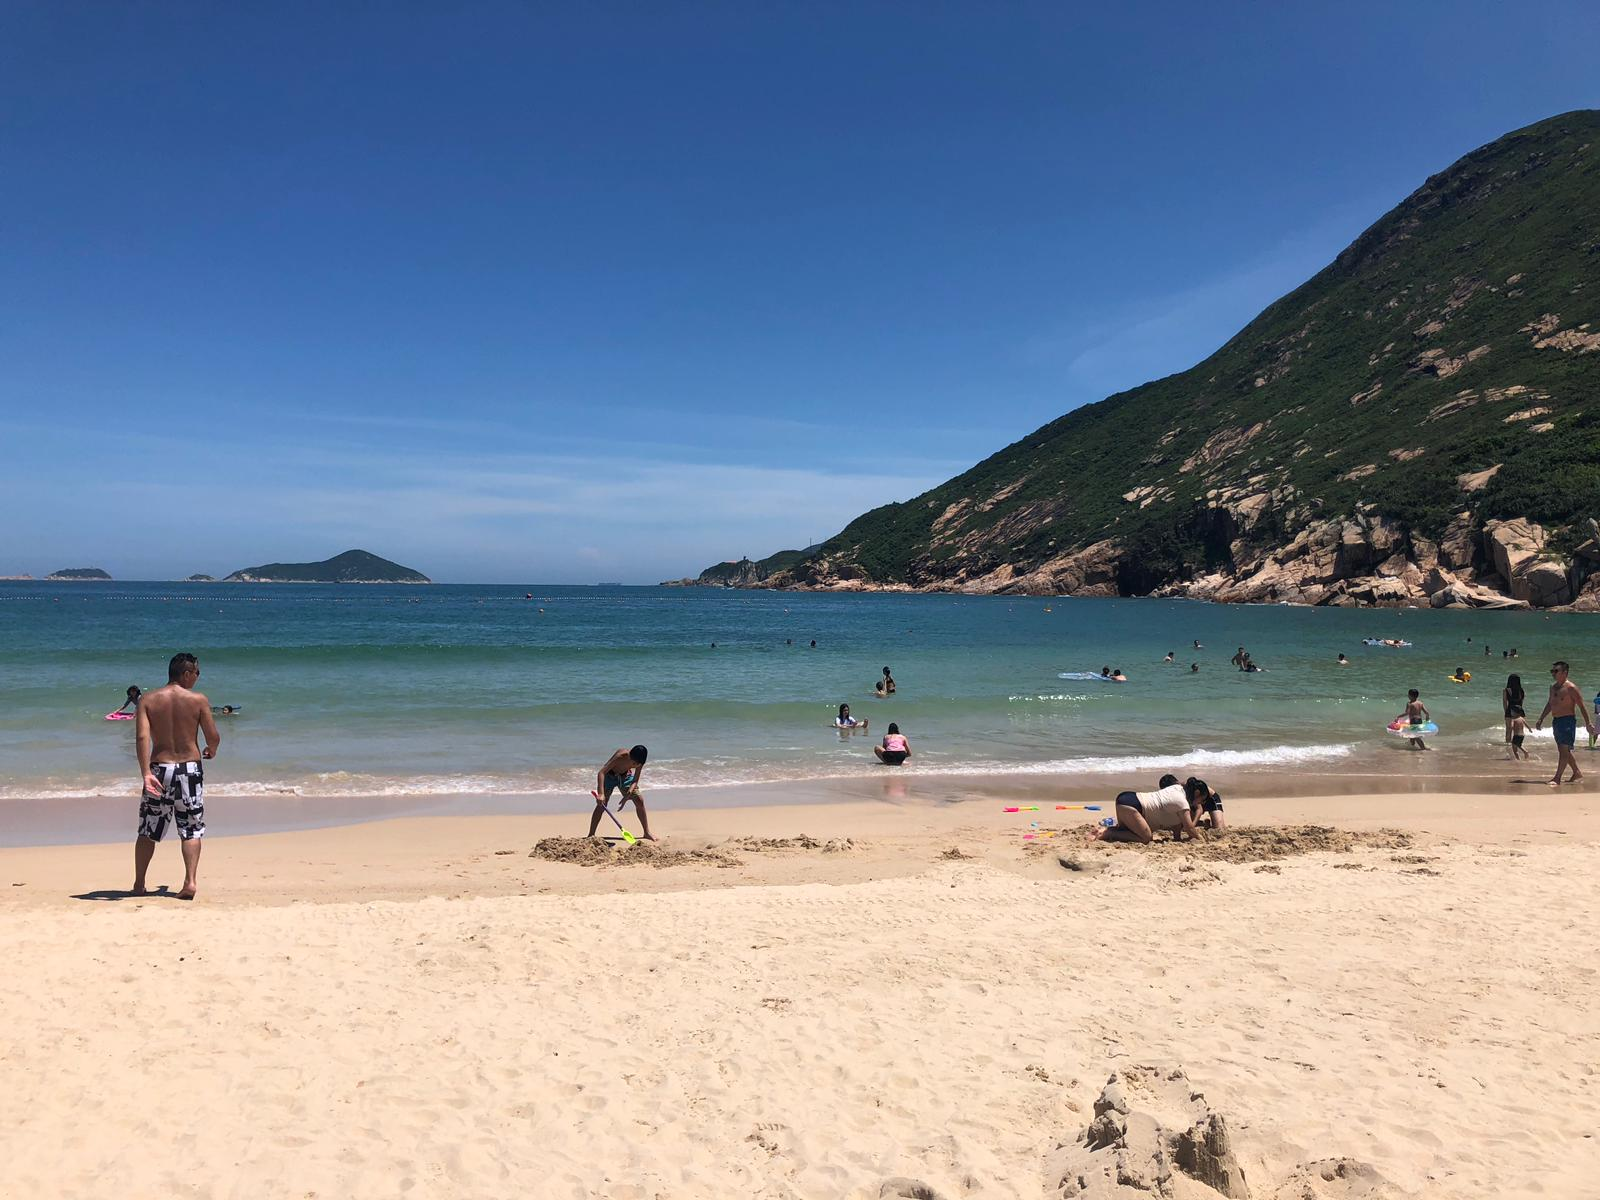 People go for a swim at Hong Kong's Shek O beach, one of the places affected by the lifeguard strike.